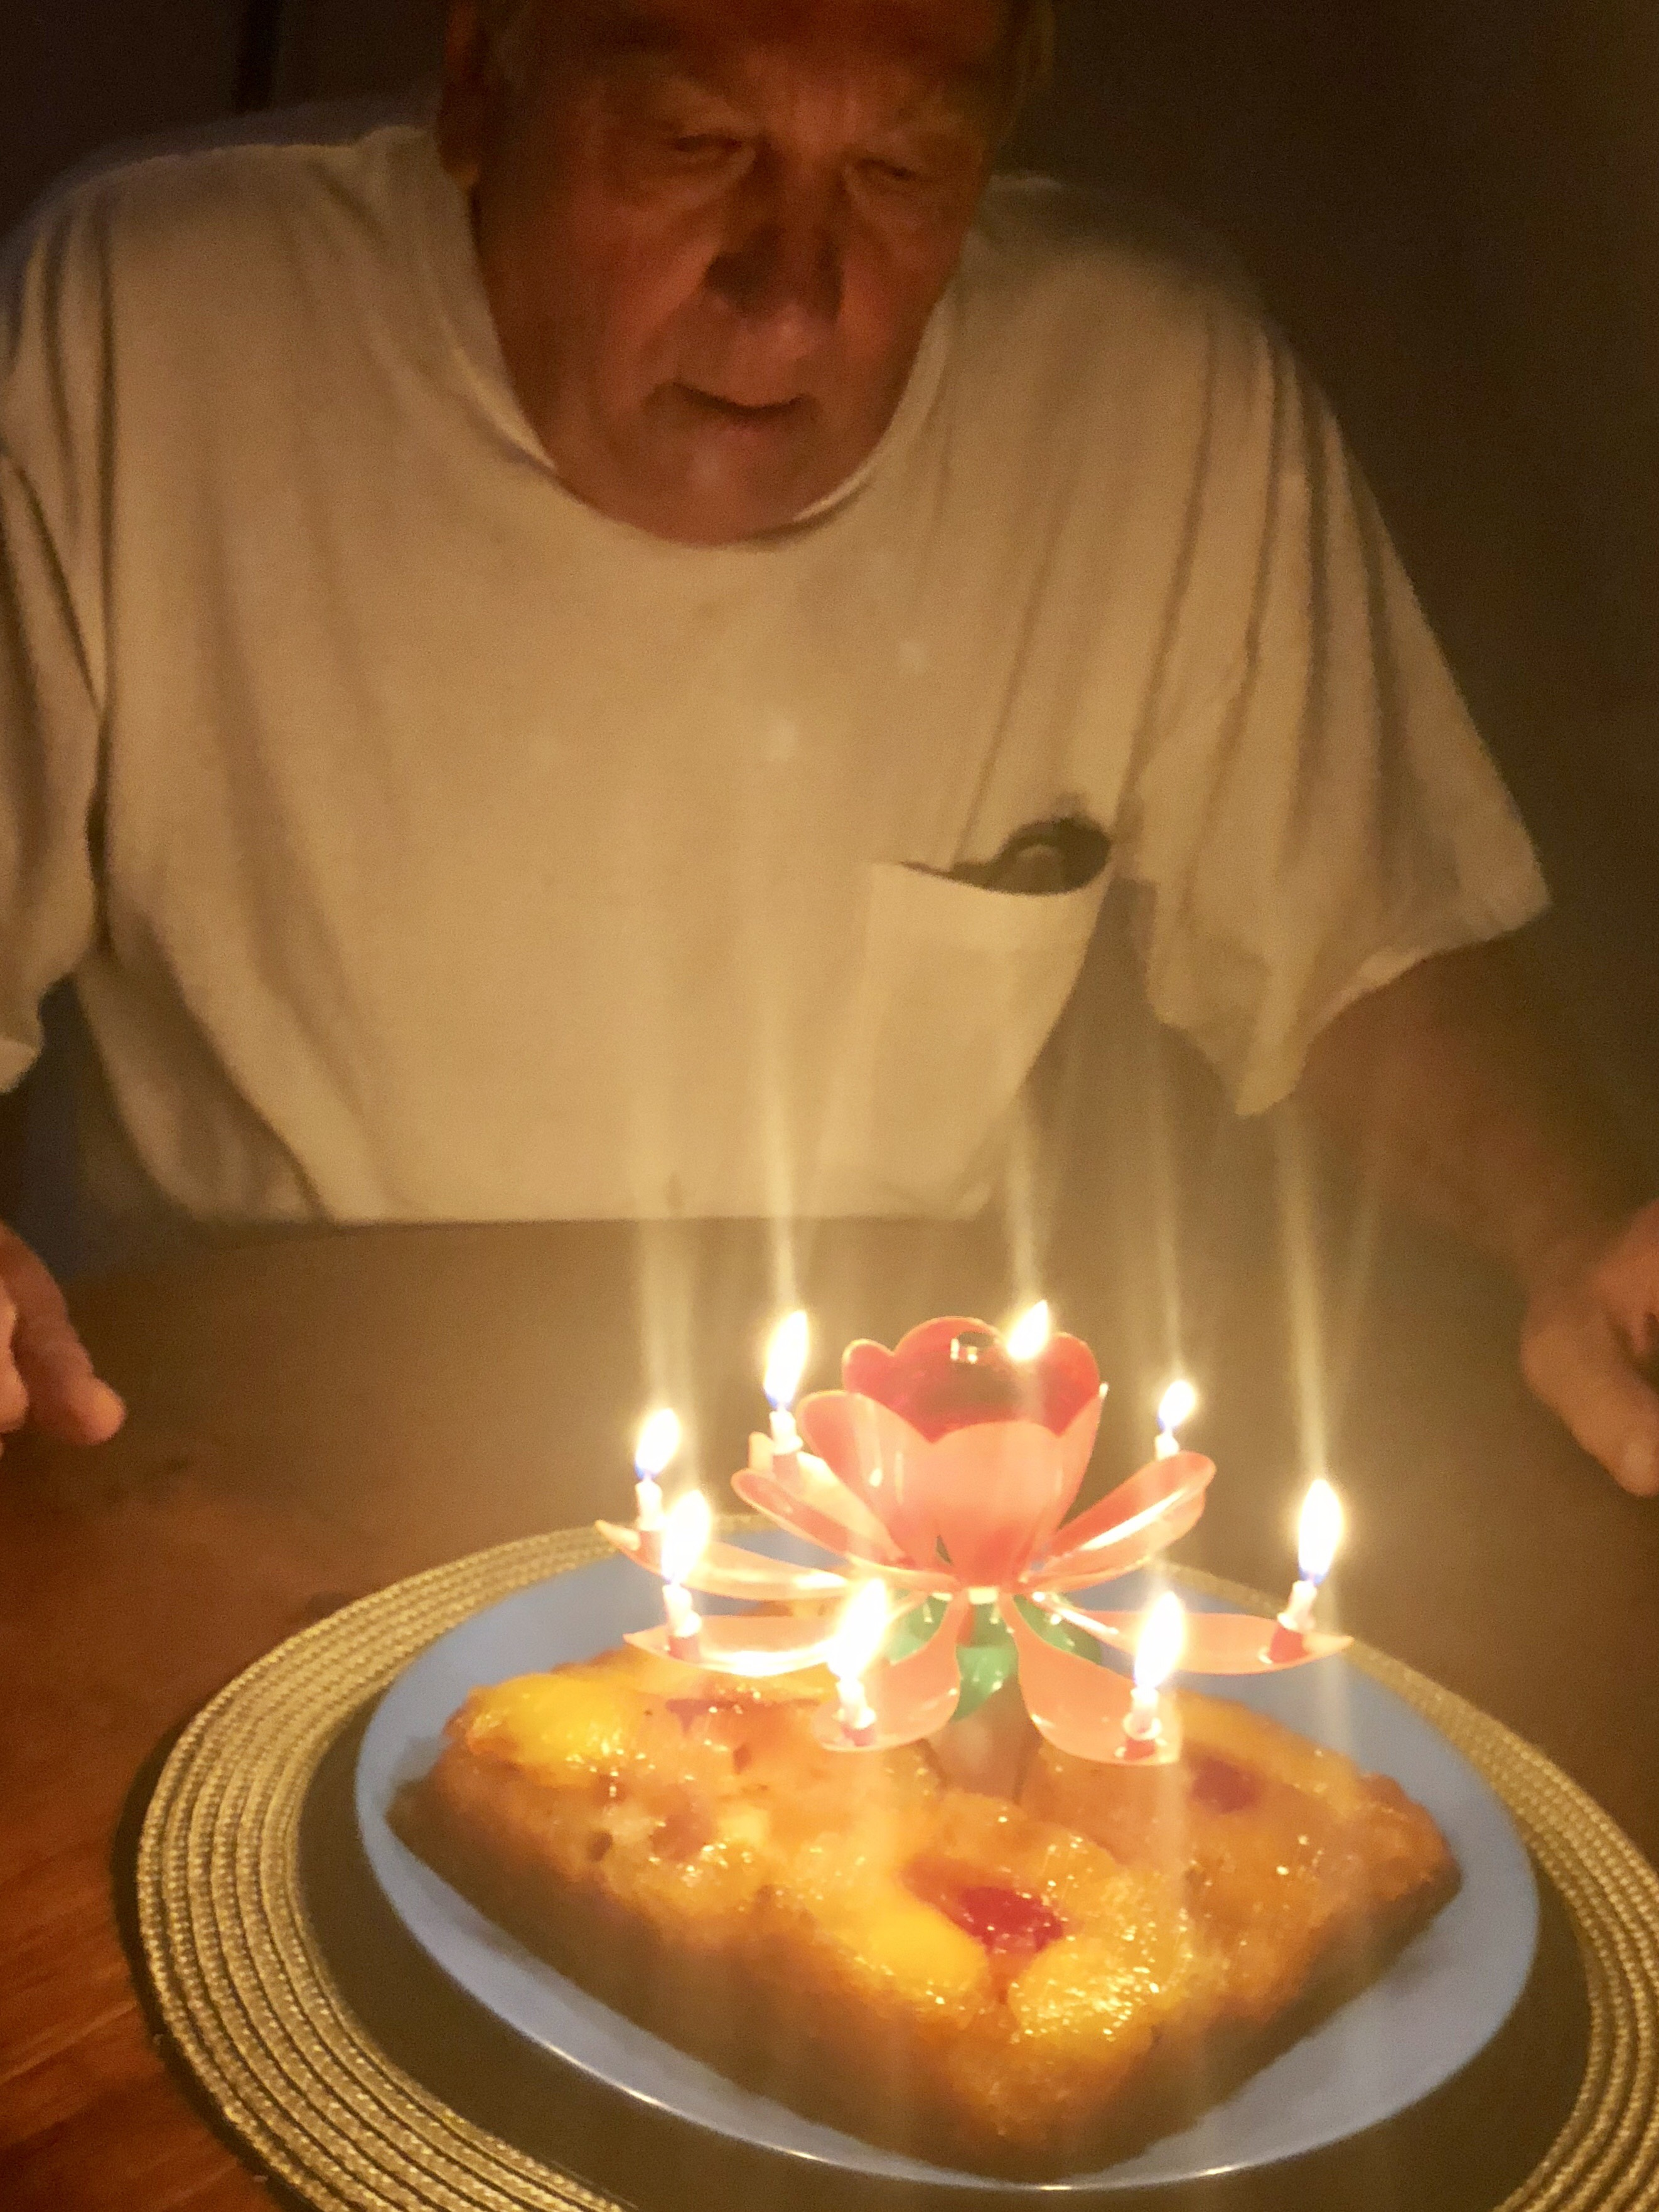 Grampsy with his cake